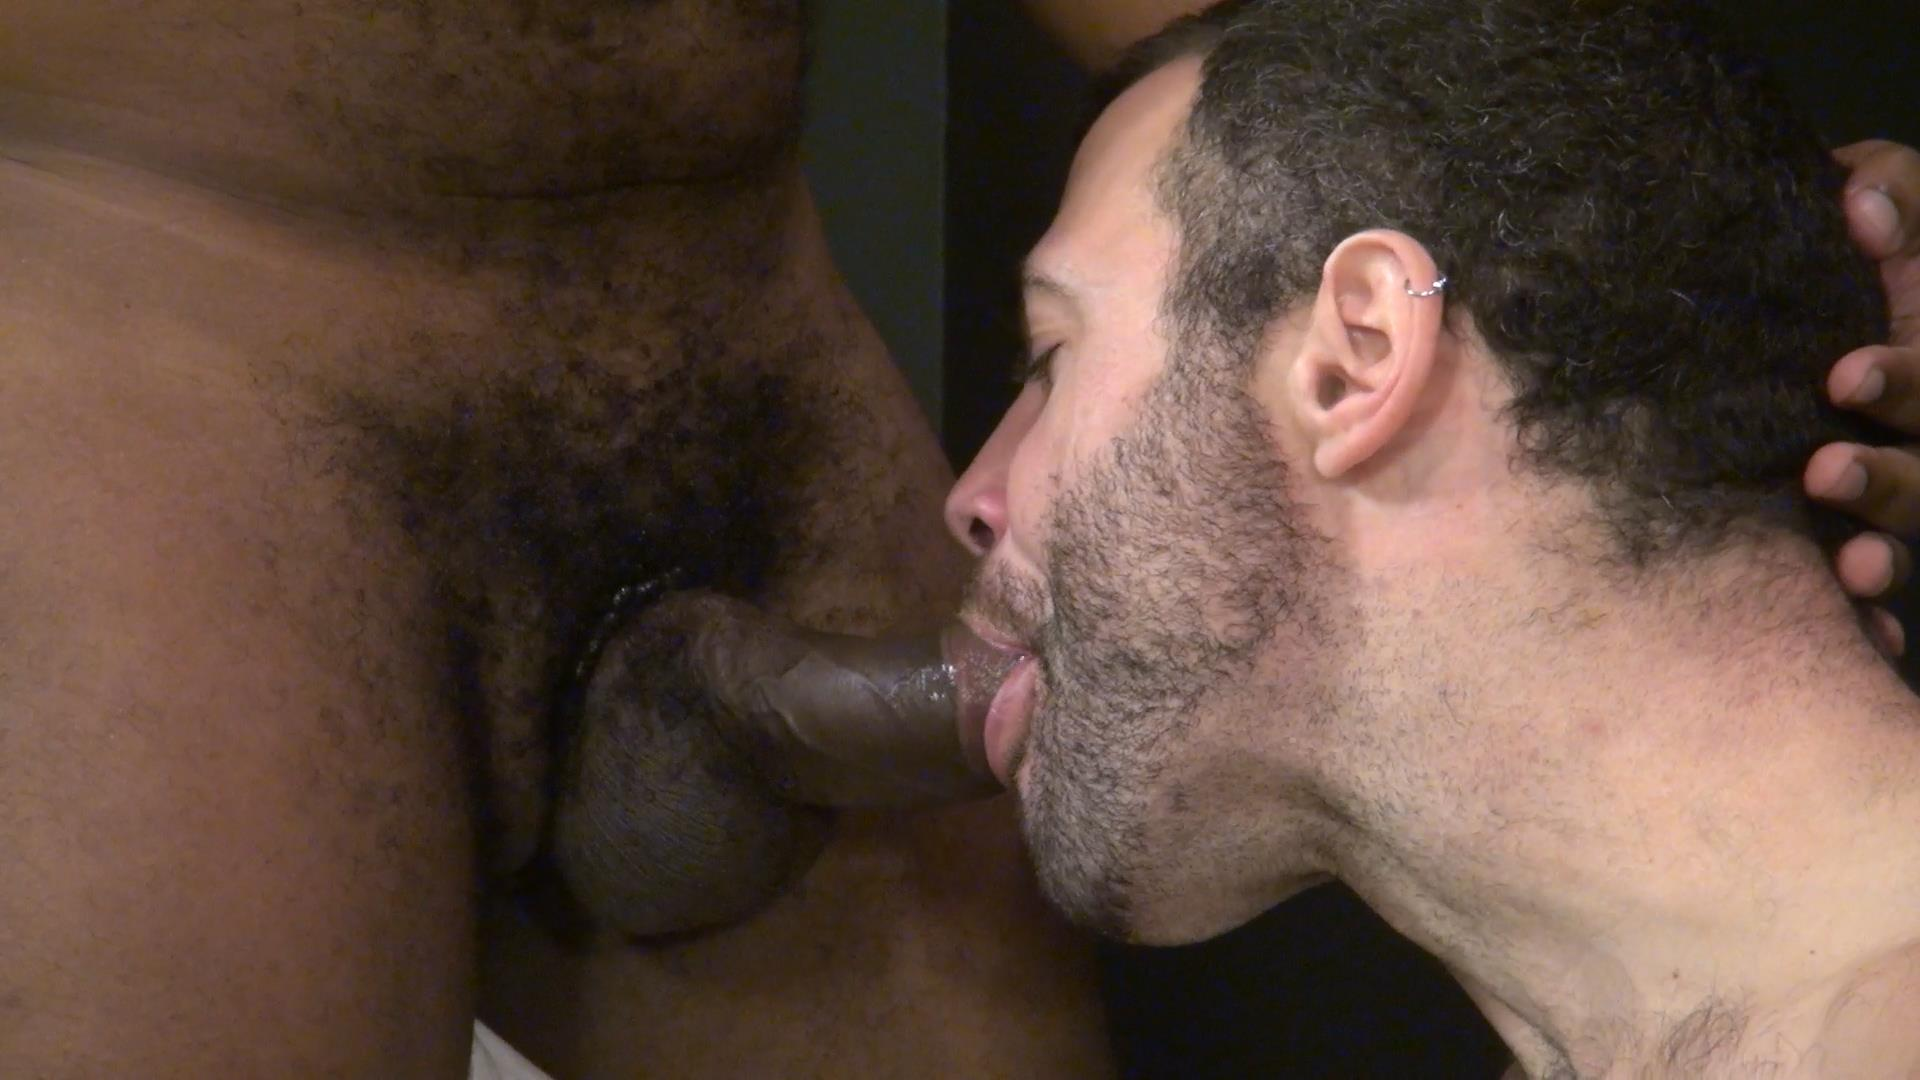 Raw-and-Rough-Jake-Wetmore-and-Dusty-Williams-and-Kid-Satyr-Bareback-Taking-Raw-Daddy-Loads-Cum-Amateur-Gay-Porn-19 Hairy Pup Taking Raw Interracial Daddy Loads Bareback